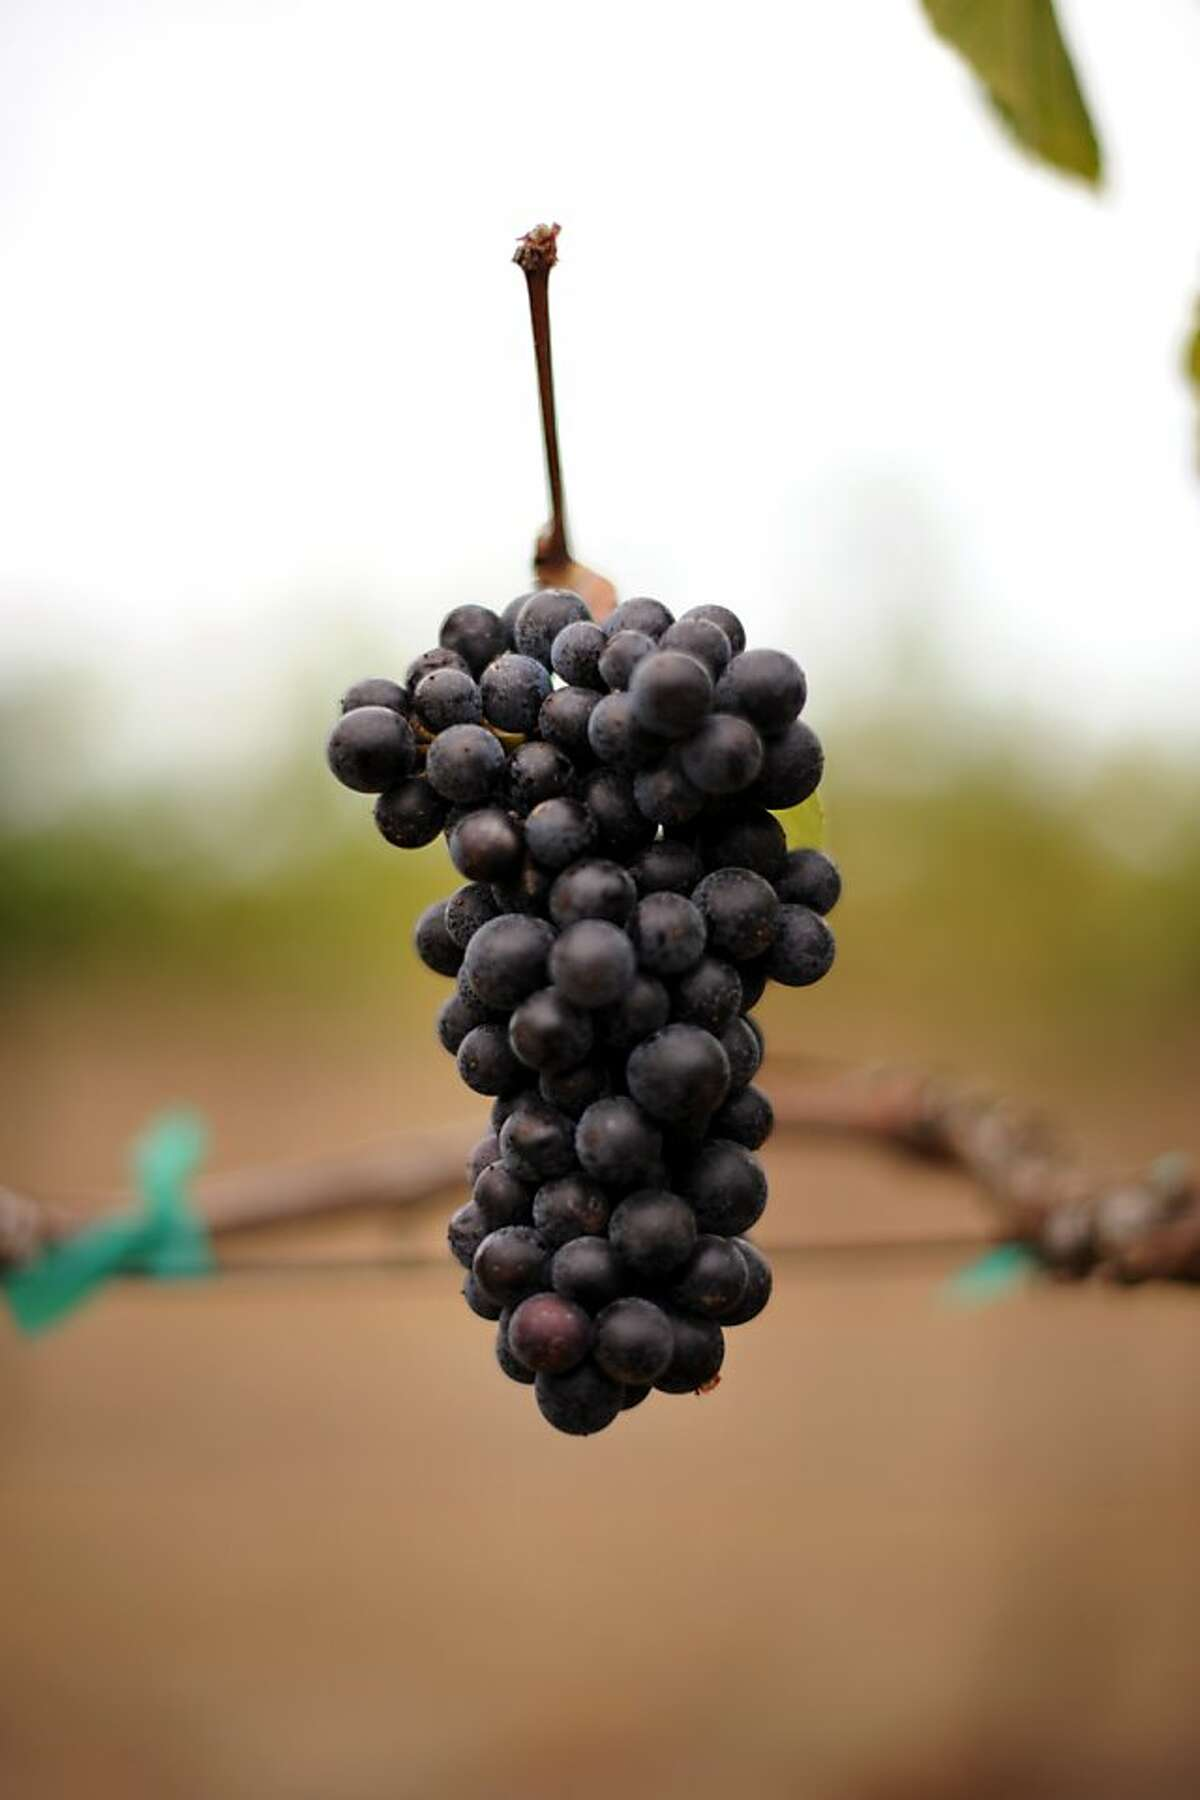 The Kiser vineyard in Philo, California in the Anderson Valley is planted with Pommard and a variety of Dijon clones of pinot noir grapes. September 30, 2011